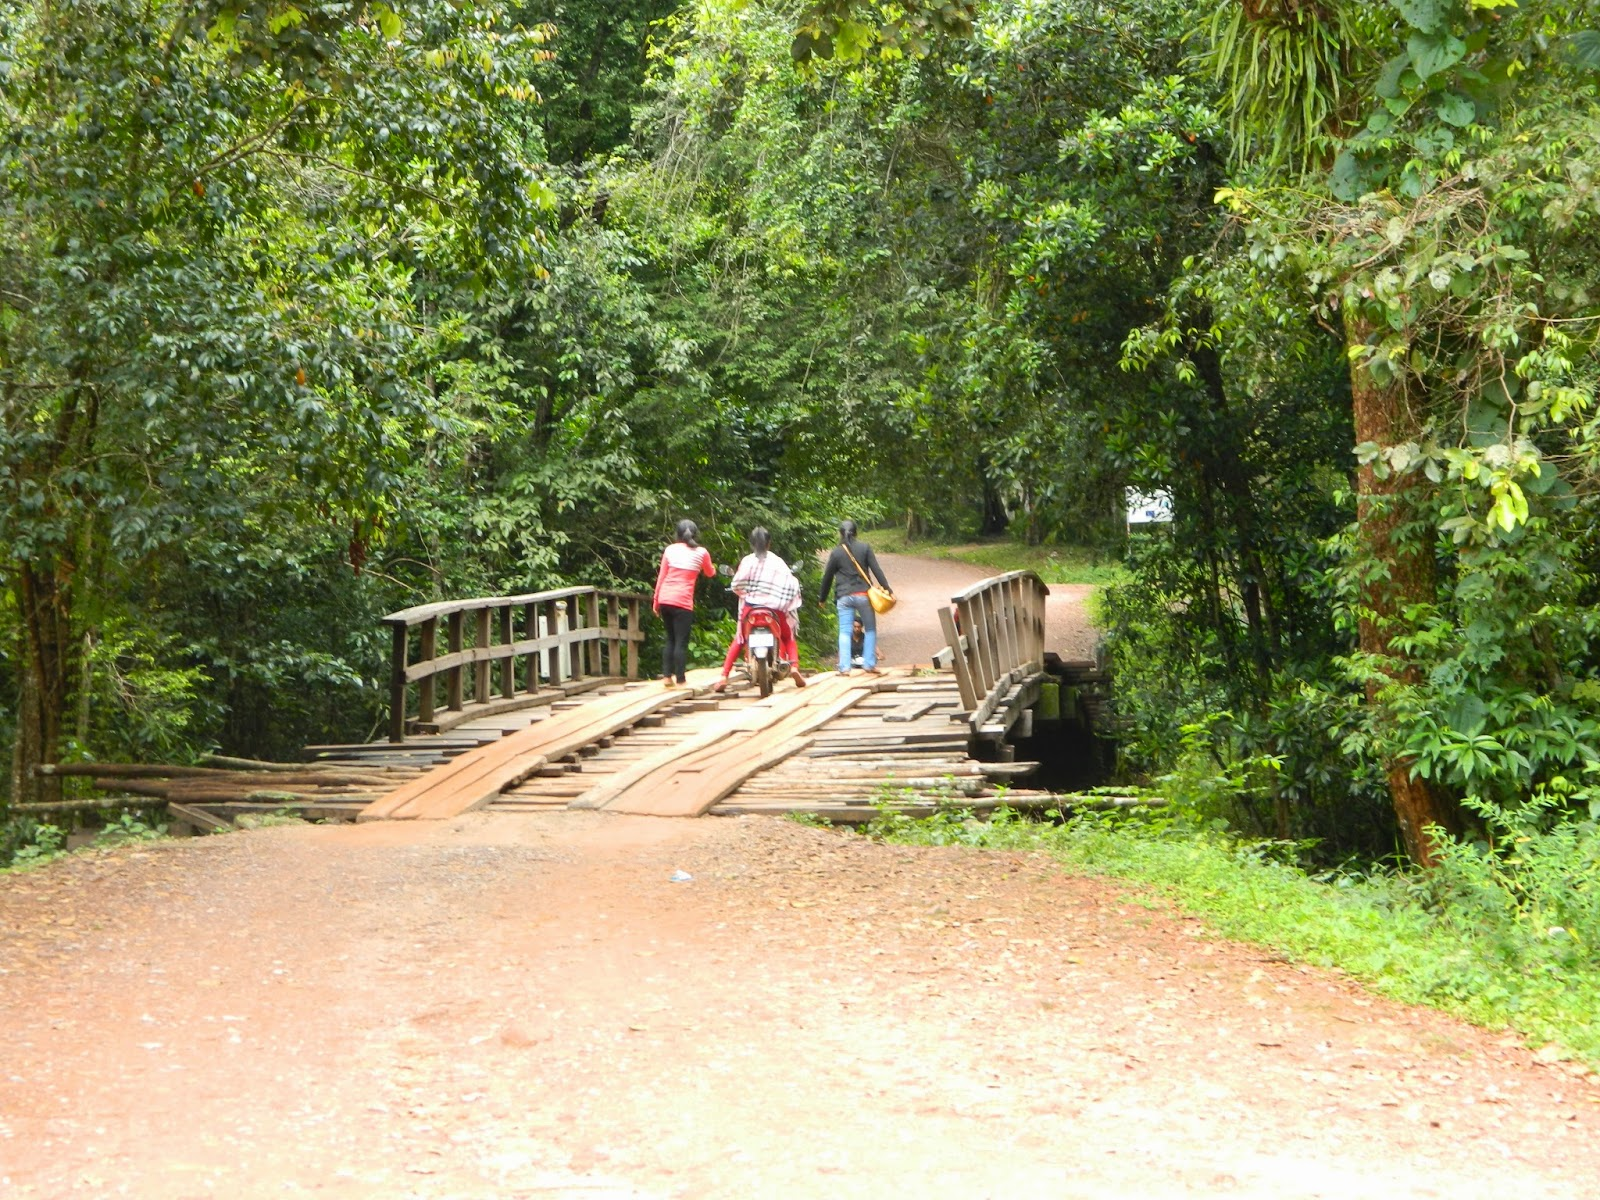 Over not-so-safe bridges to Kulen mountains